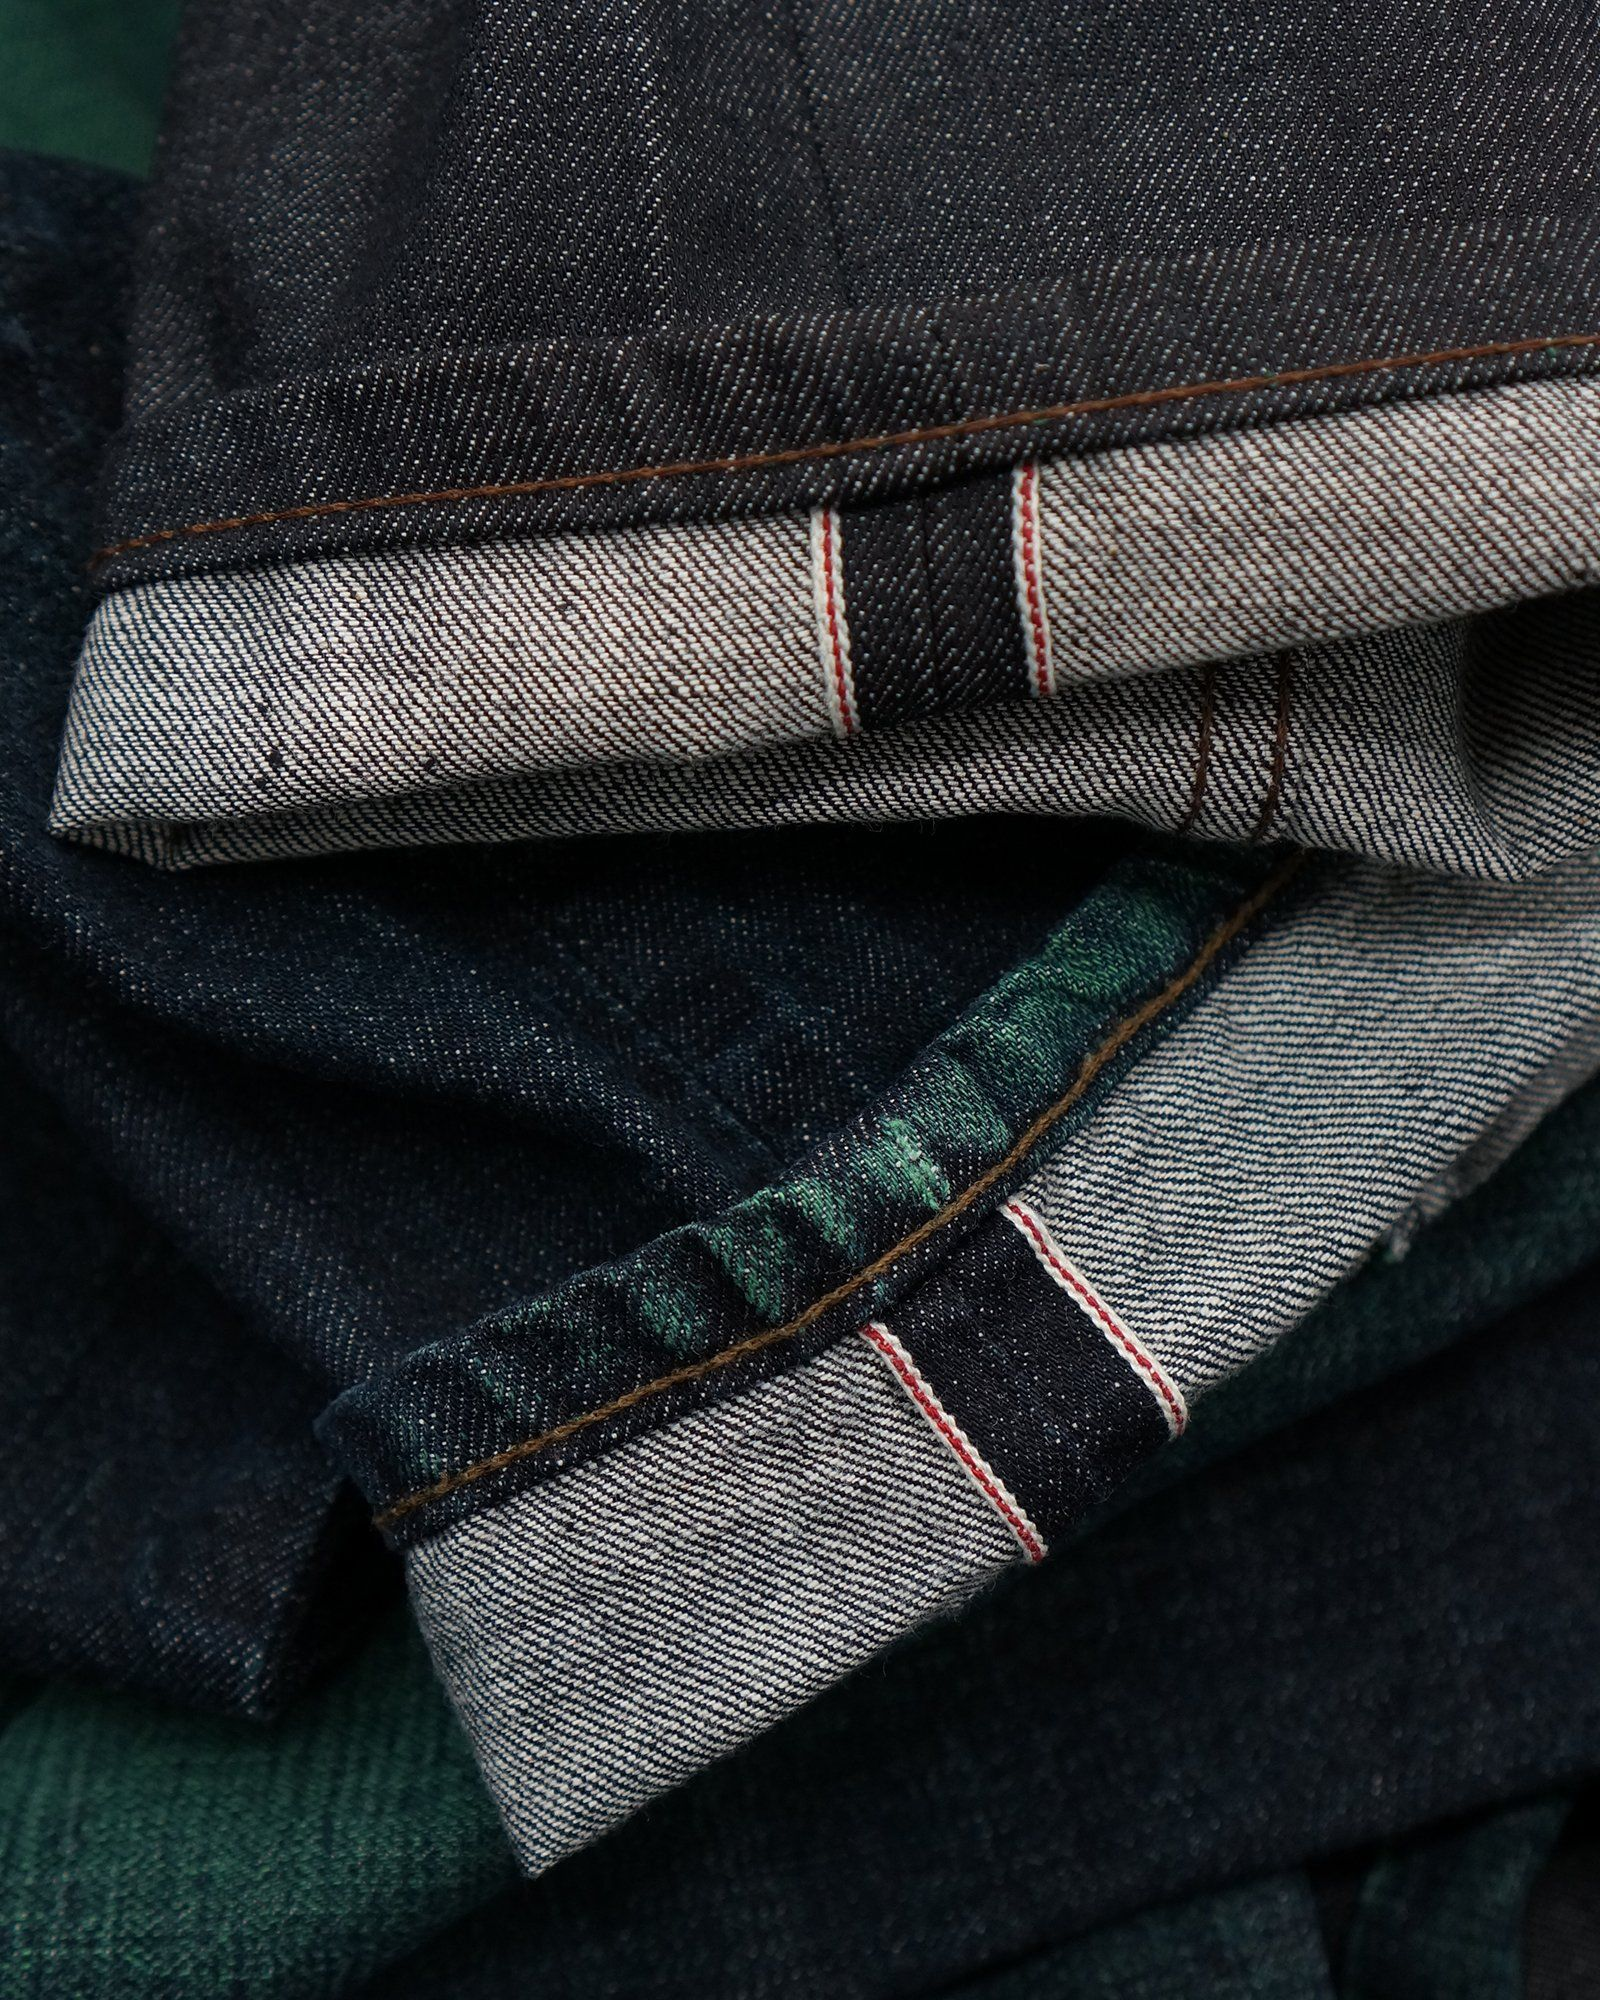 e5357fc7 Naked & Famous Denim's Green Core Selvedge is a 12.5 Japanese Selvedge Denim  designed to fade to green! Traditional rope dyed denim fades from indigo to  ...